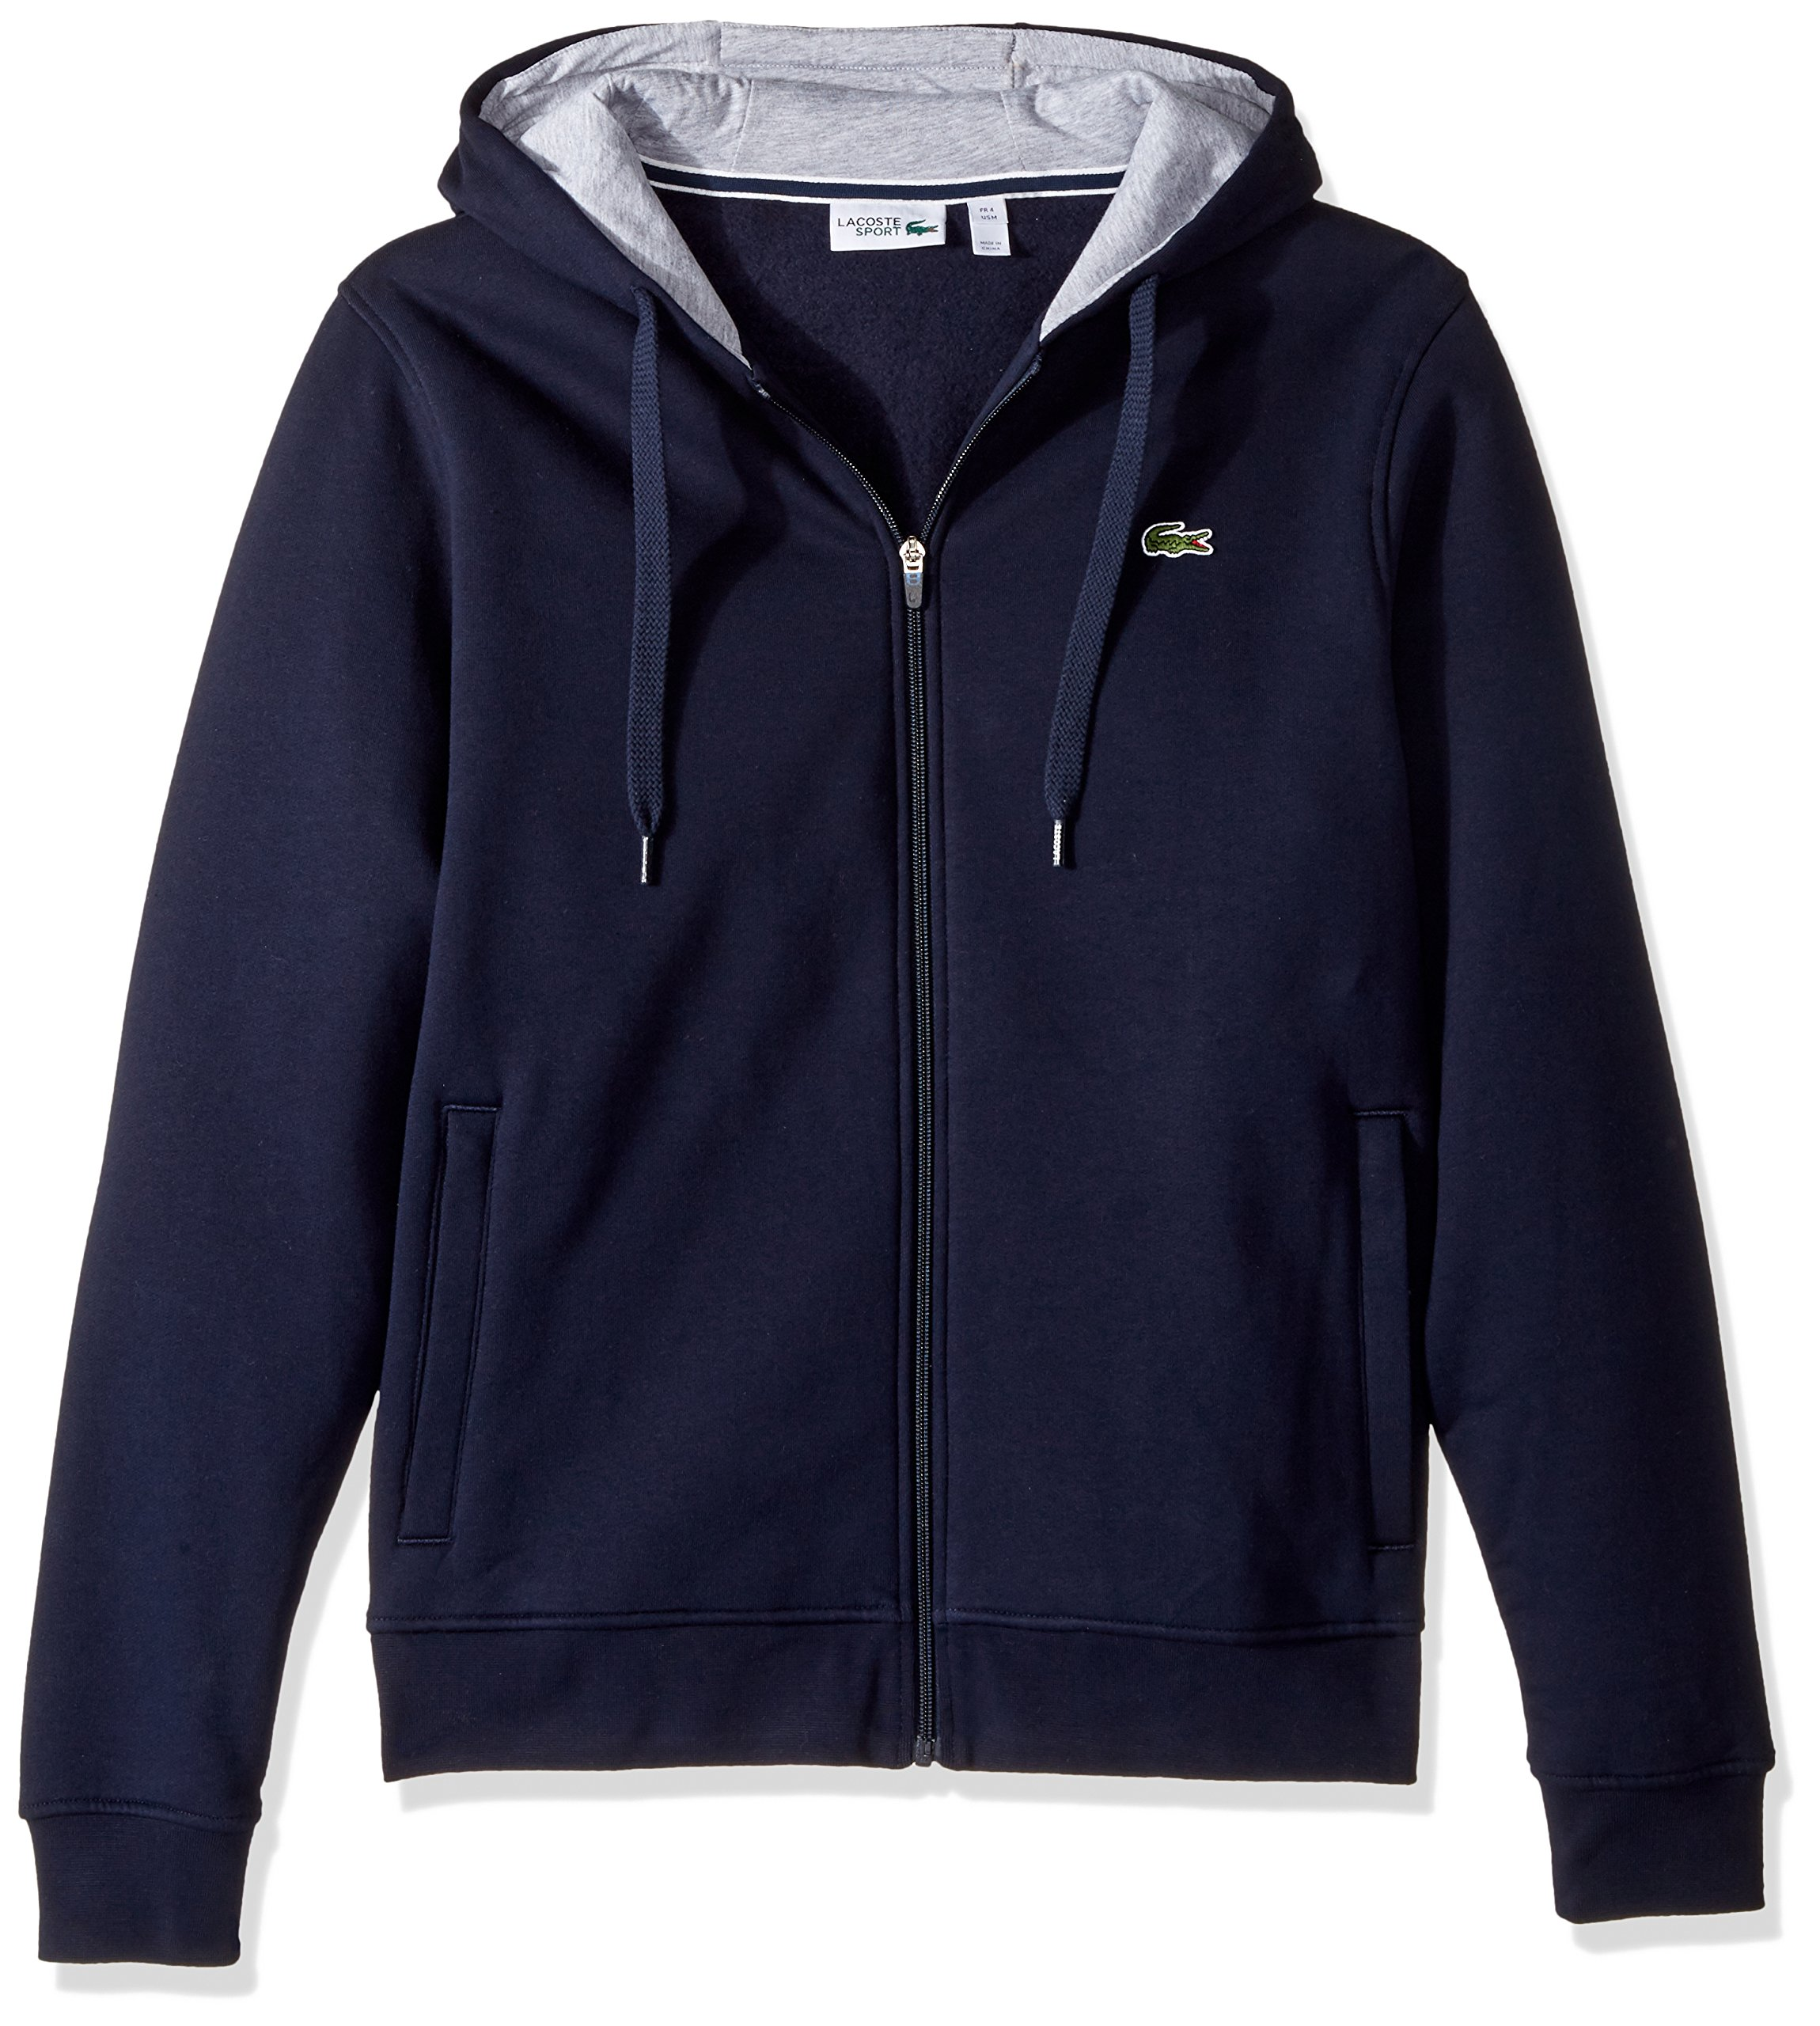 Lacoste Men's Full Zip Hoodie Fleece Sweatshirt, Navy Blue/Silver Chine, Small by Lacoste (Image #1)